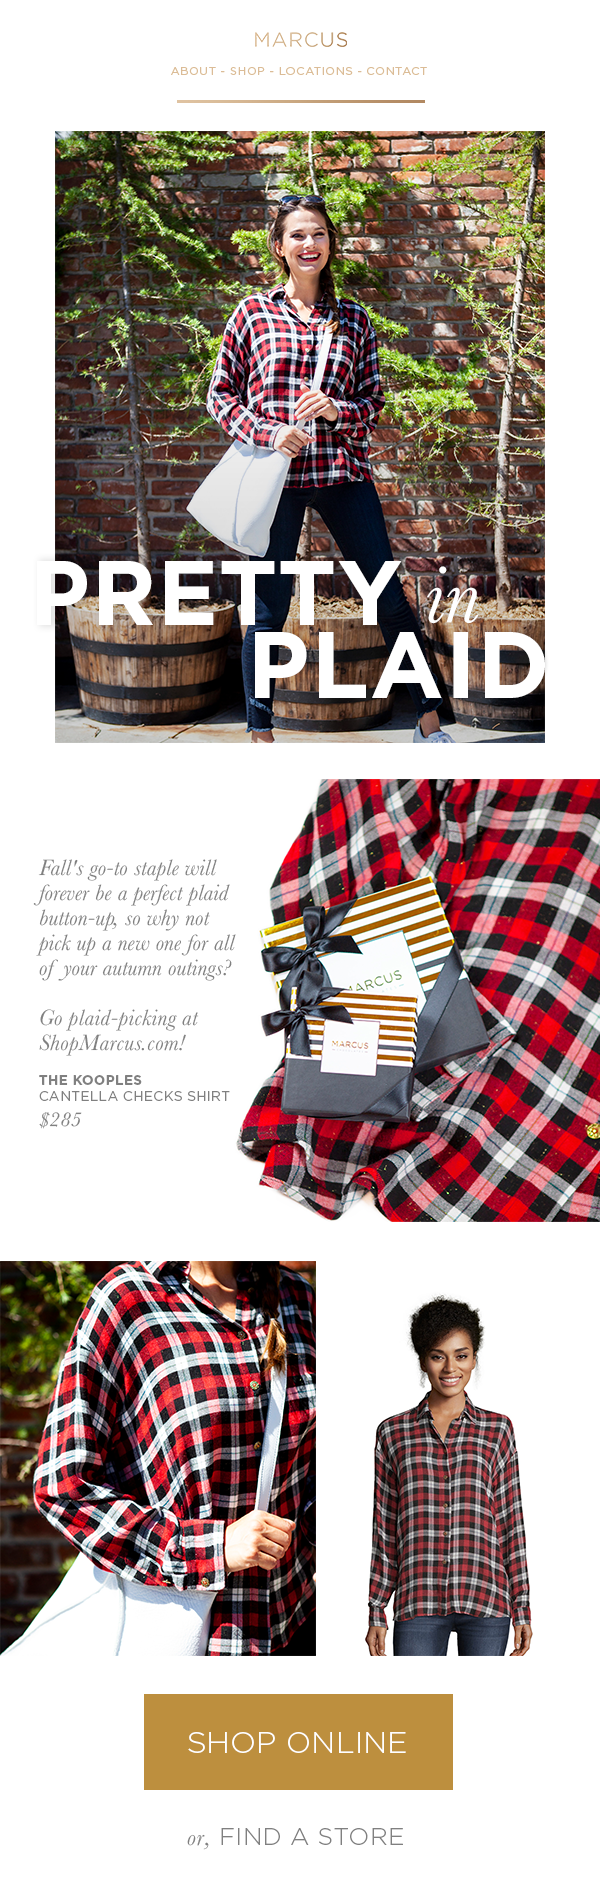 Marcus_Email_The-Kooples-Plaid.png